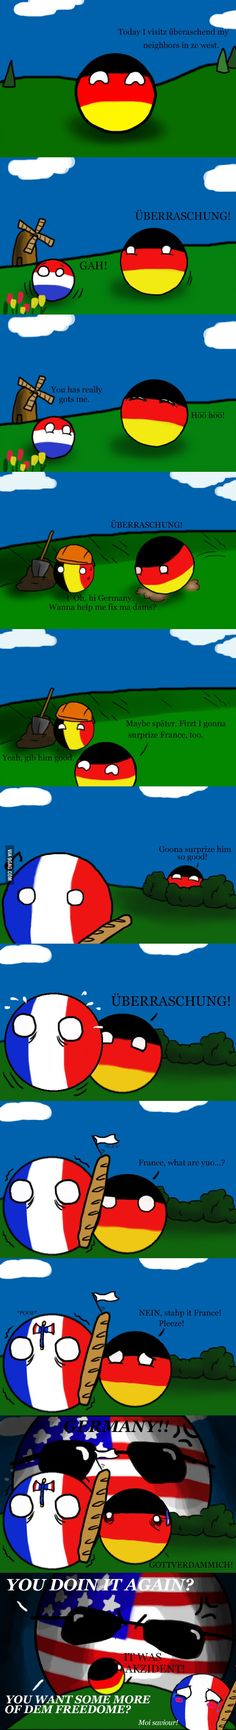 It is hard for Germany to make jokes